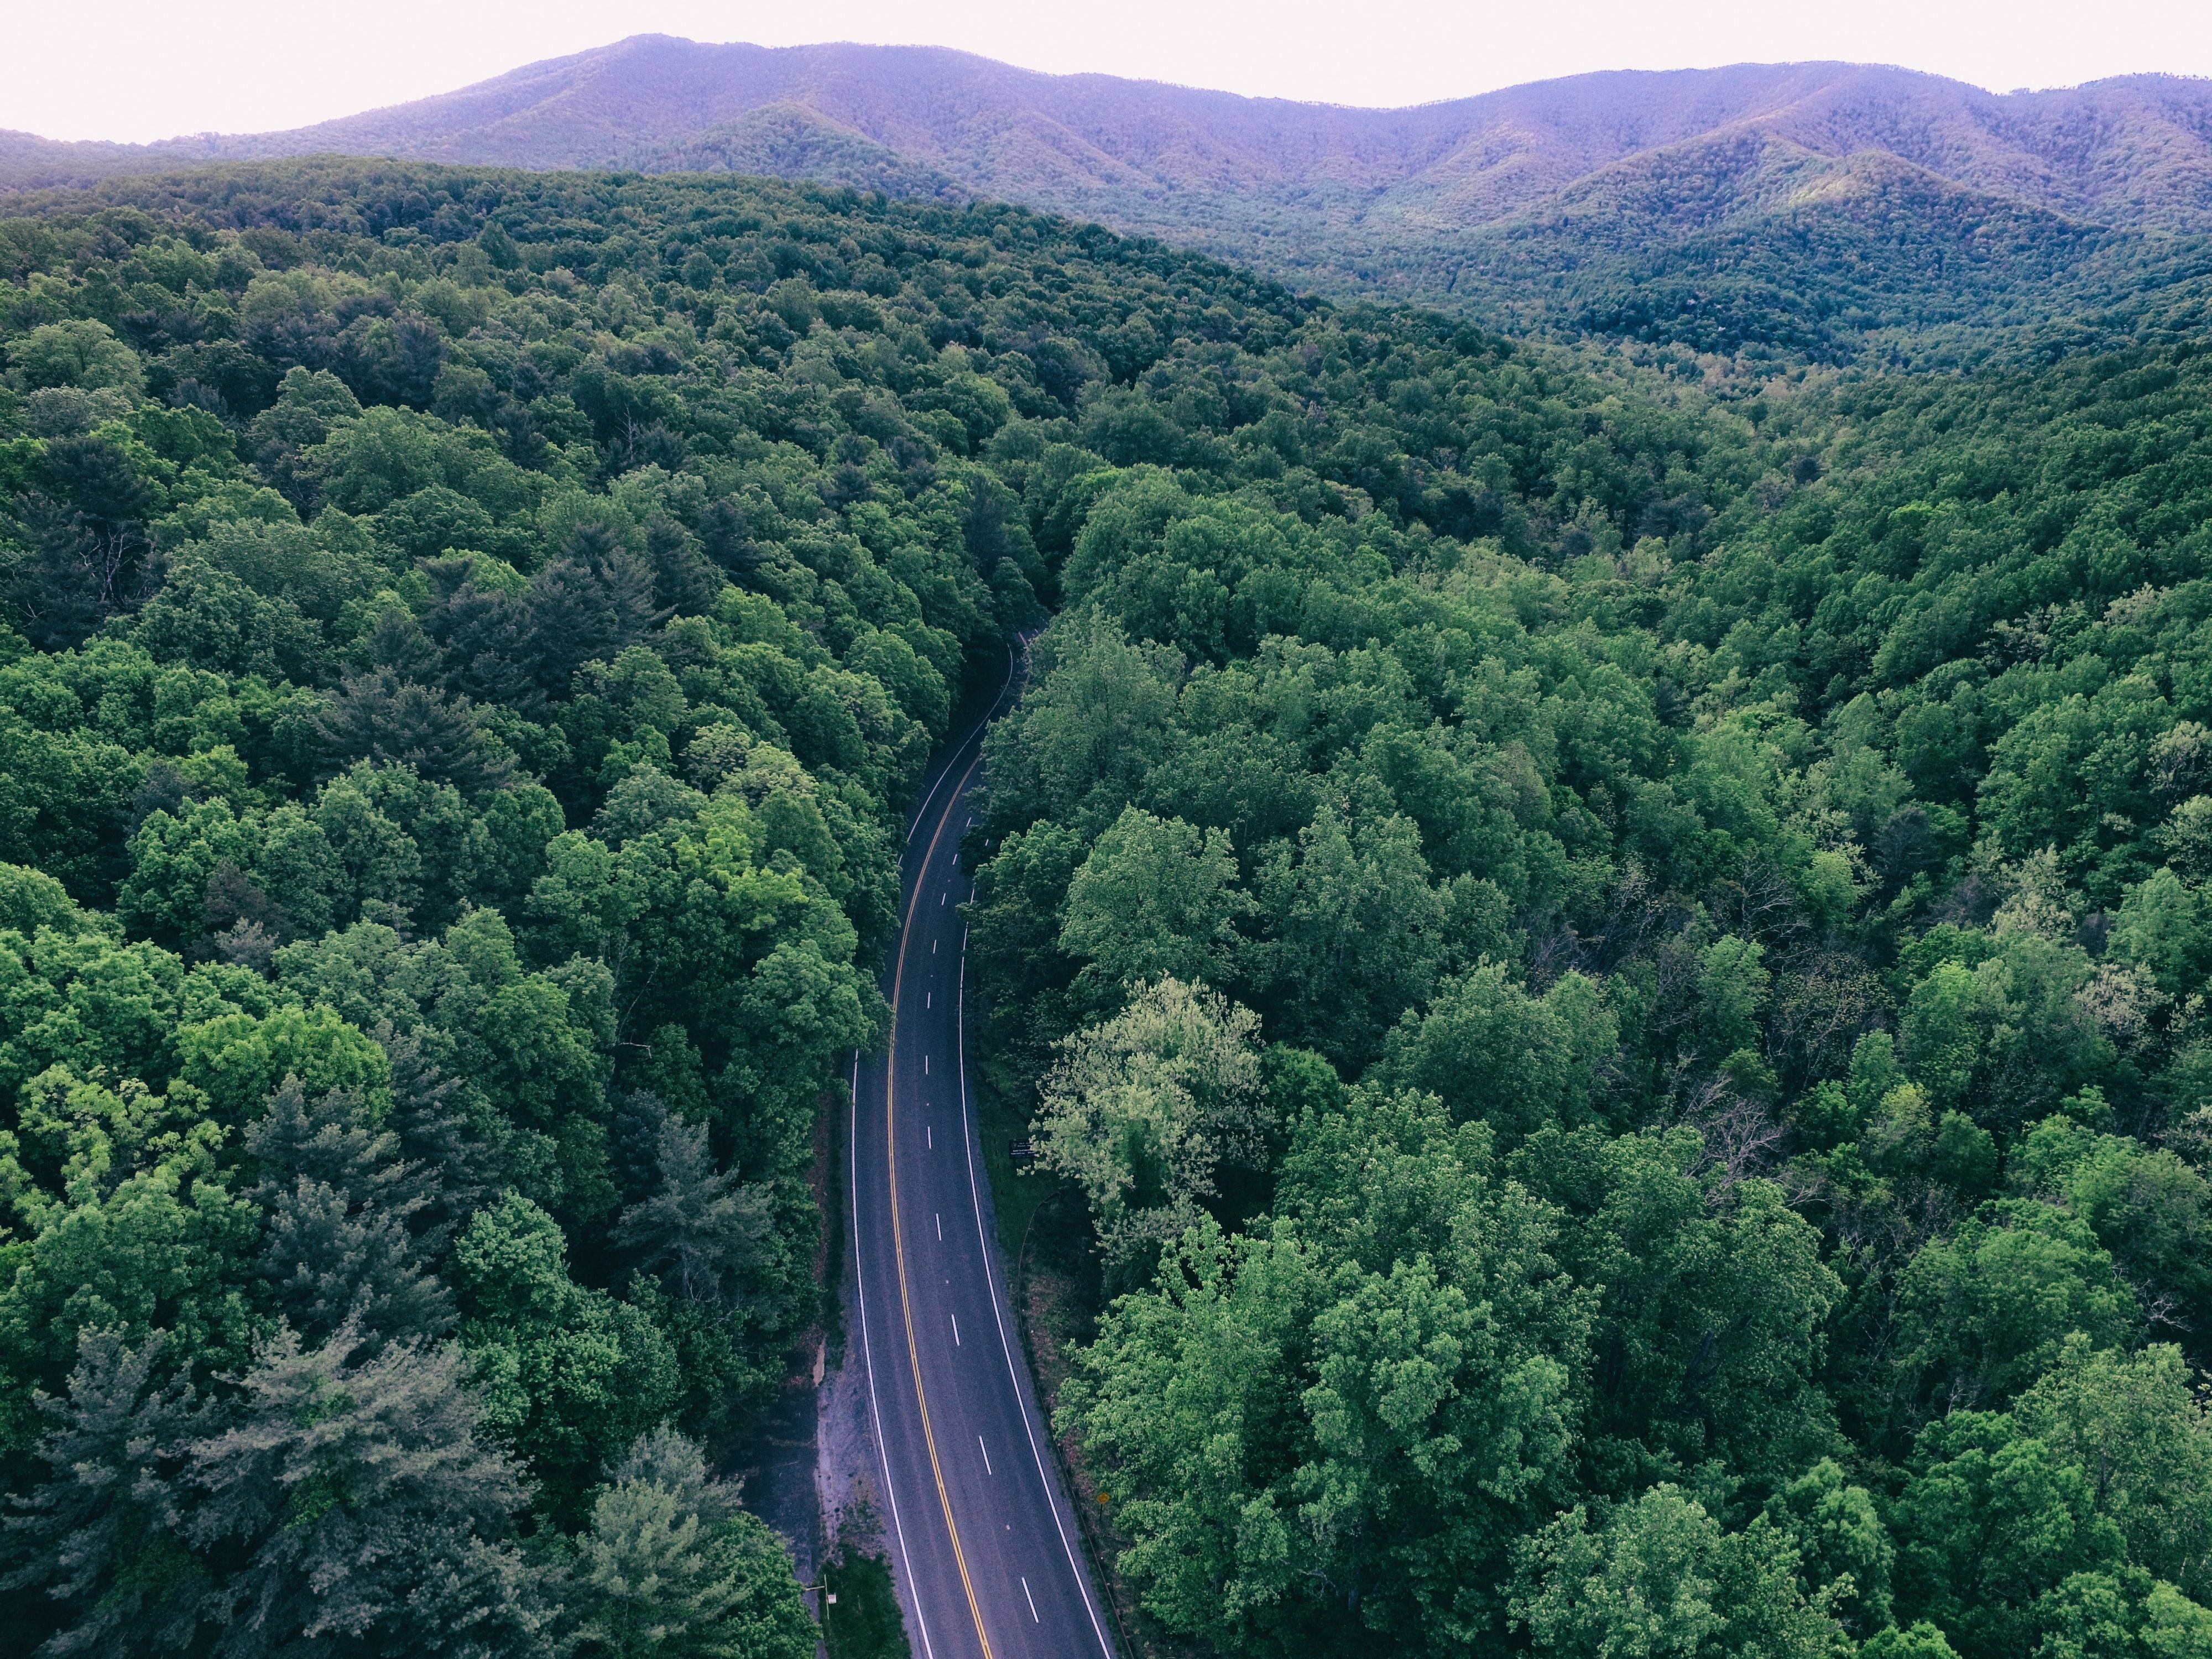 Aerial view of highway through dense green trees in Virginia